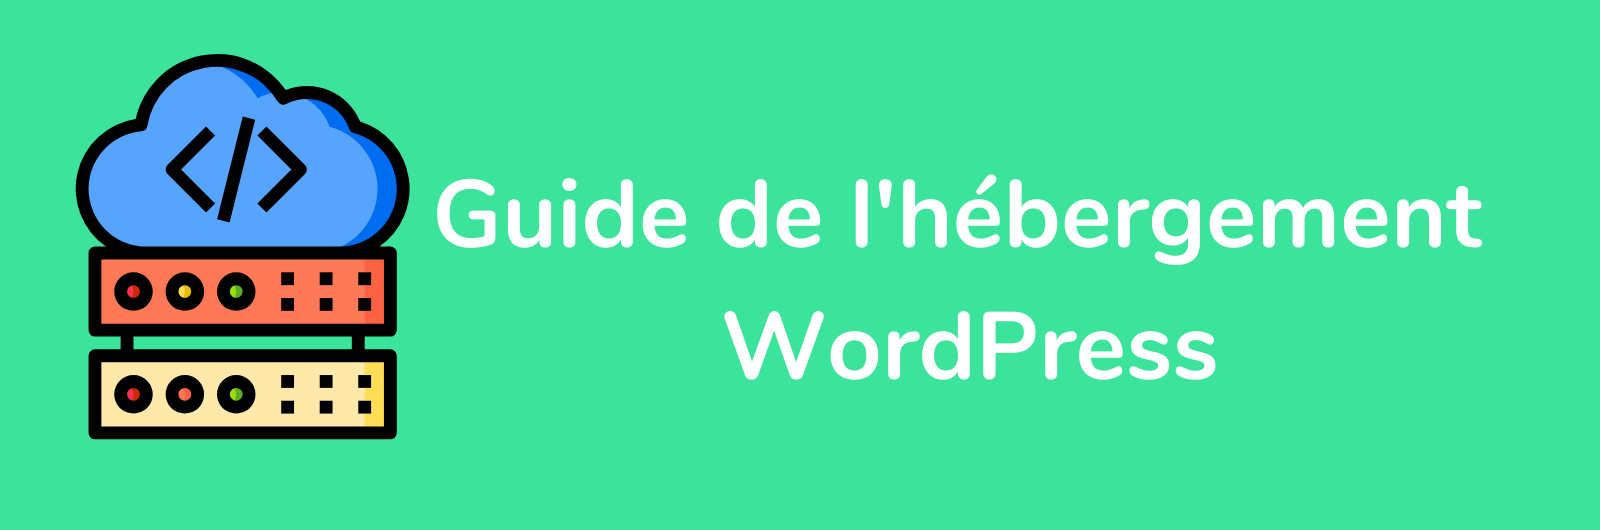 guide-hebergement-wordpress-min